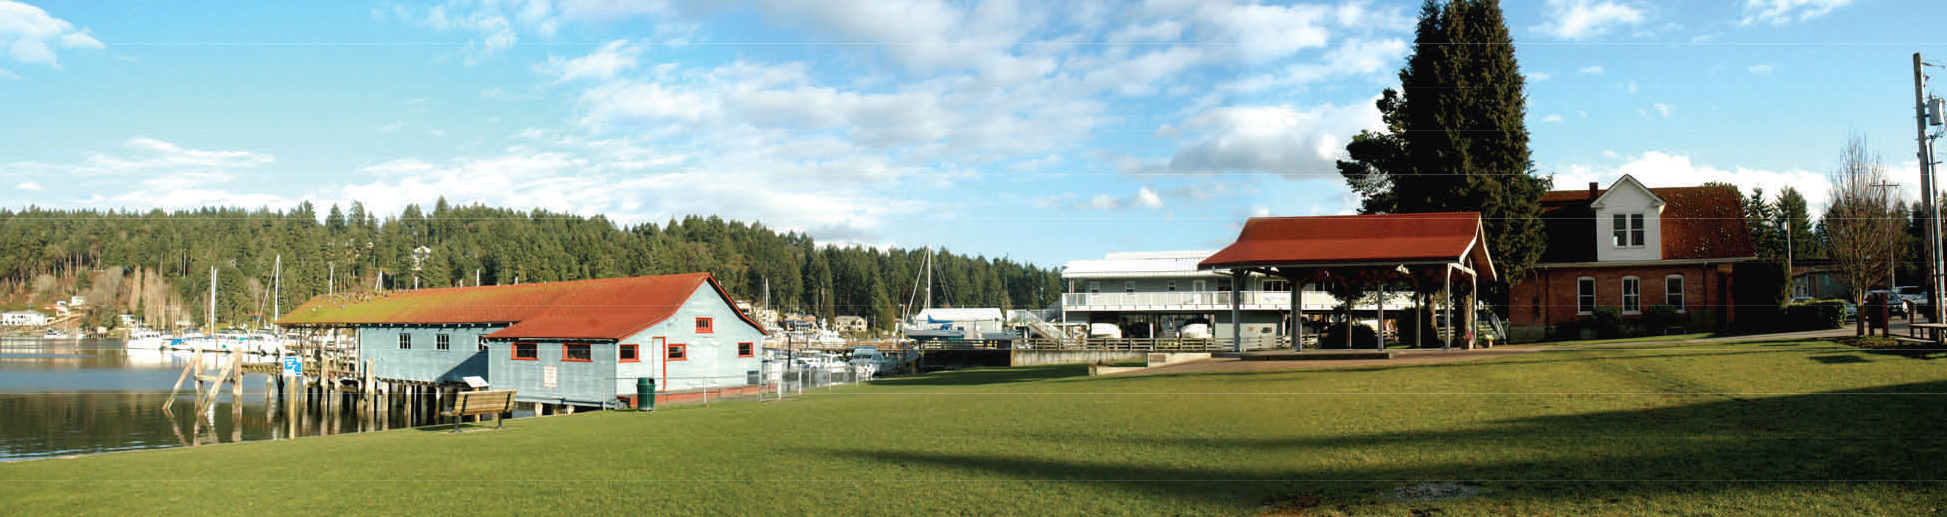 Get to Know Gig Harbor: 5 Things to Do on a Day Out in the